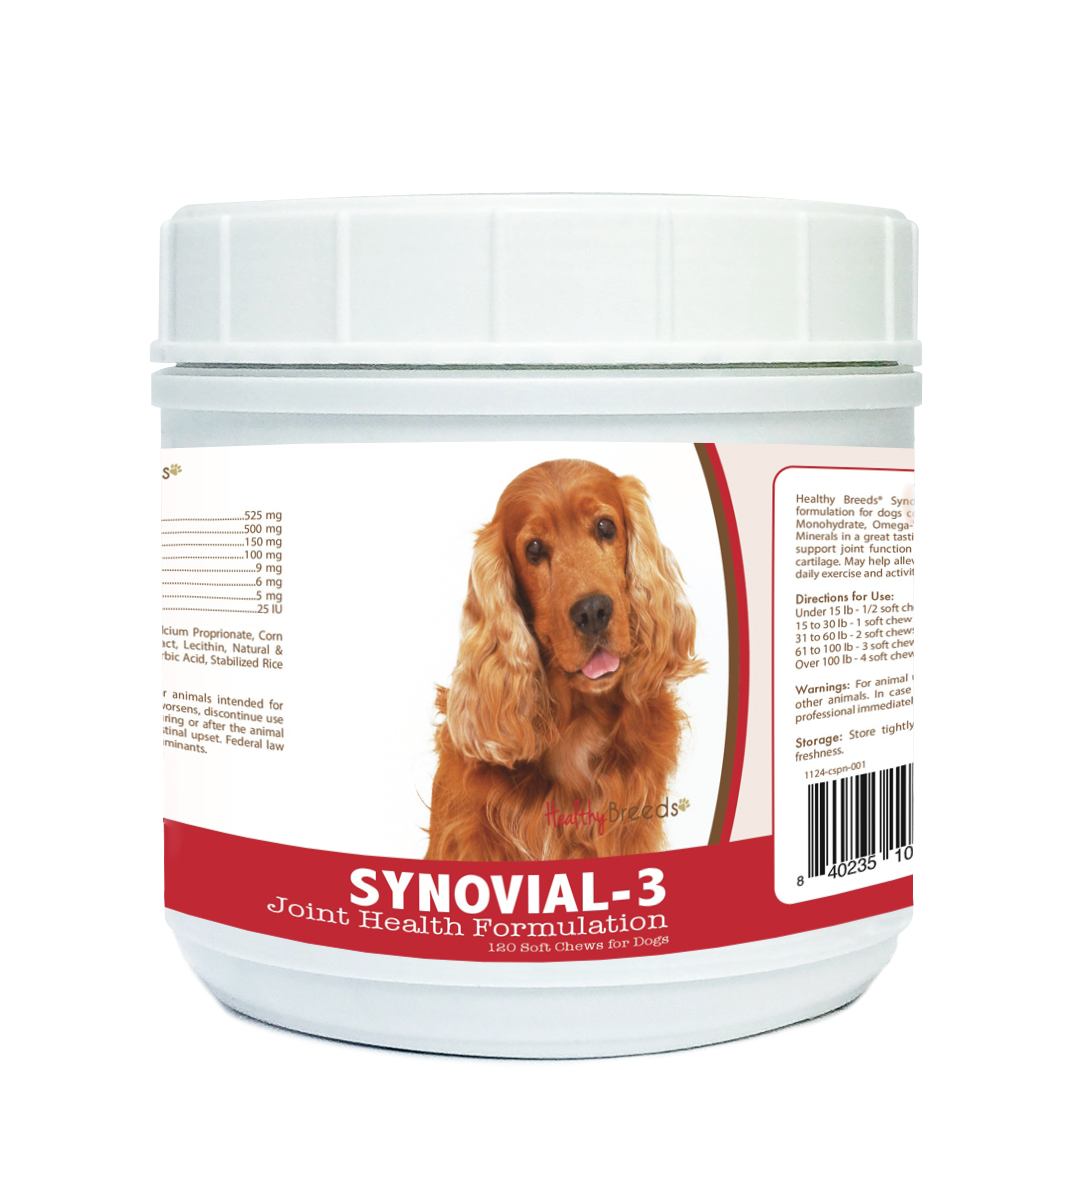 Healthy Breeds Synovial-3 Dog Hip and Joint Supplement for Cocker Spaniel, Glucosamine Omega 3 Vitamin C & E Support, 120 Soft Chew Treats